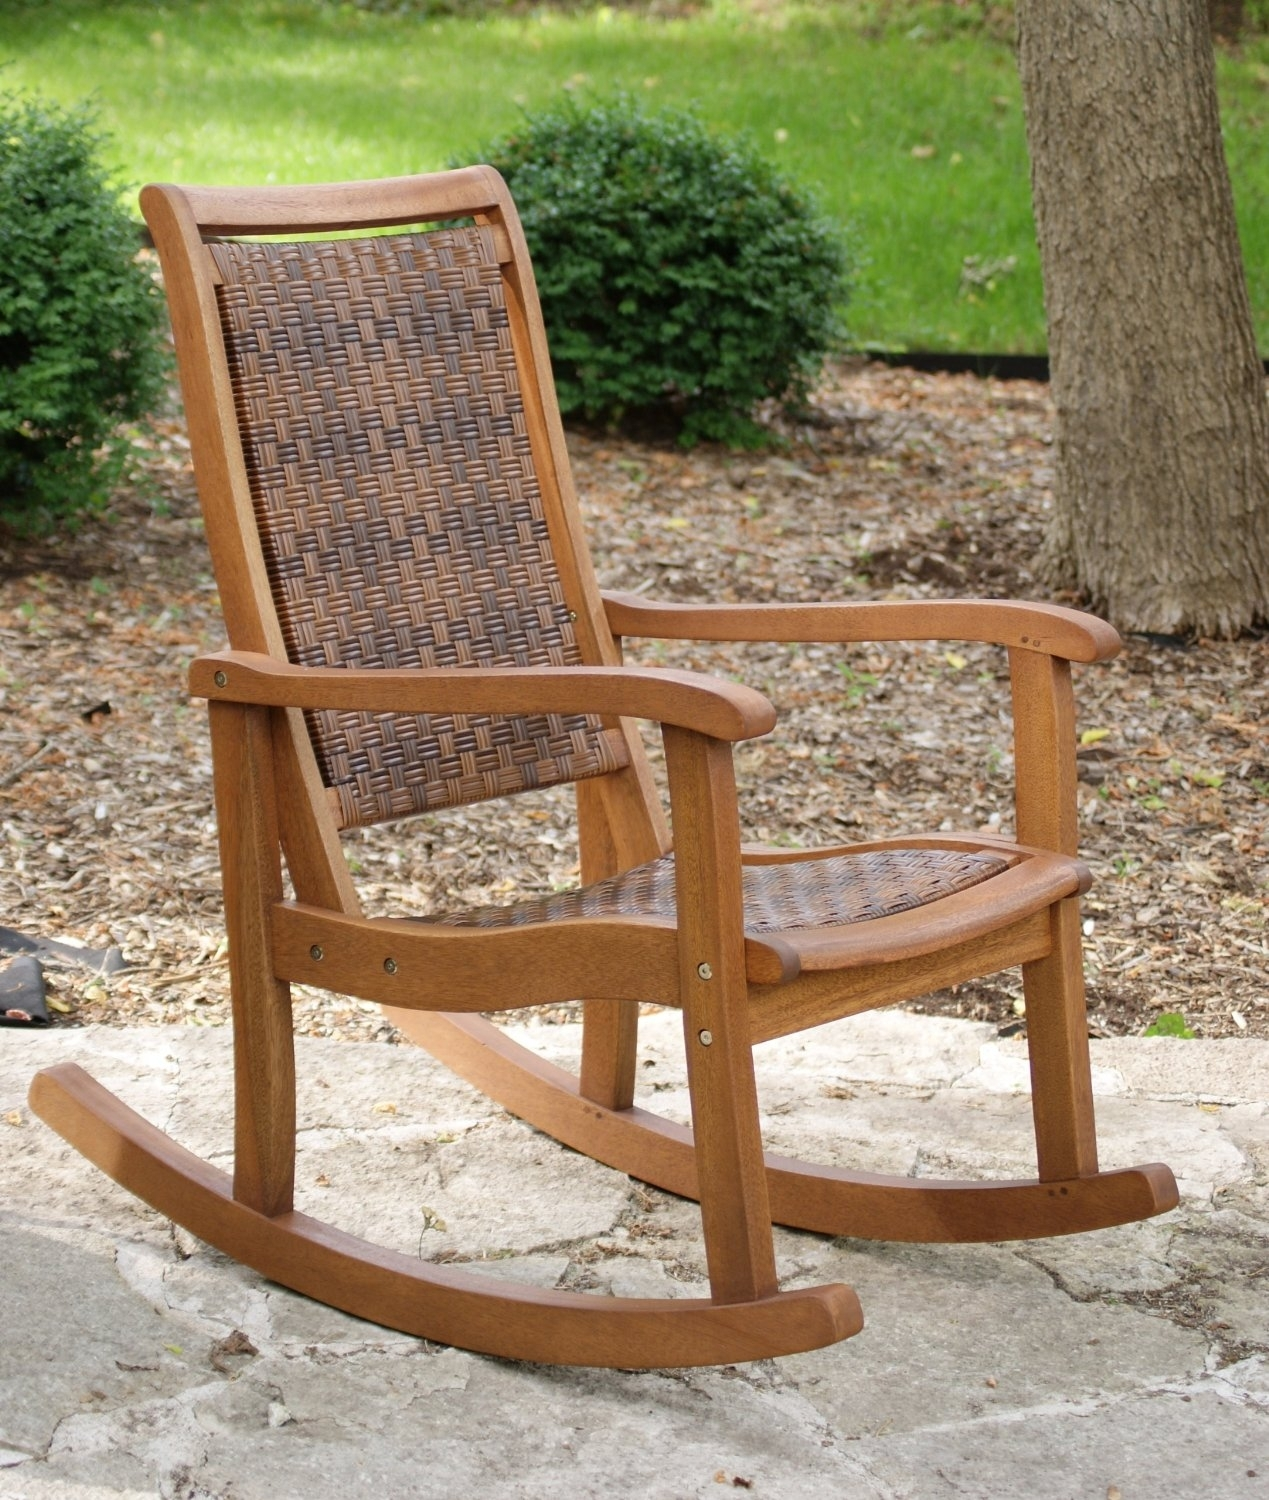 Great Rocking Patio Chairs Outdoor Wicker Rocking Chairs Patio Within Outdoor Vinyl Rocking Chairs (View 5 of 15)